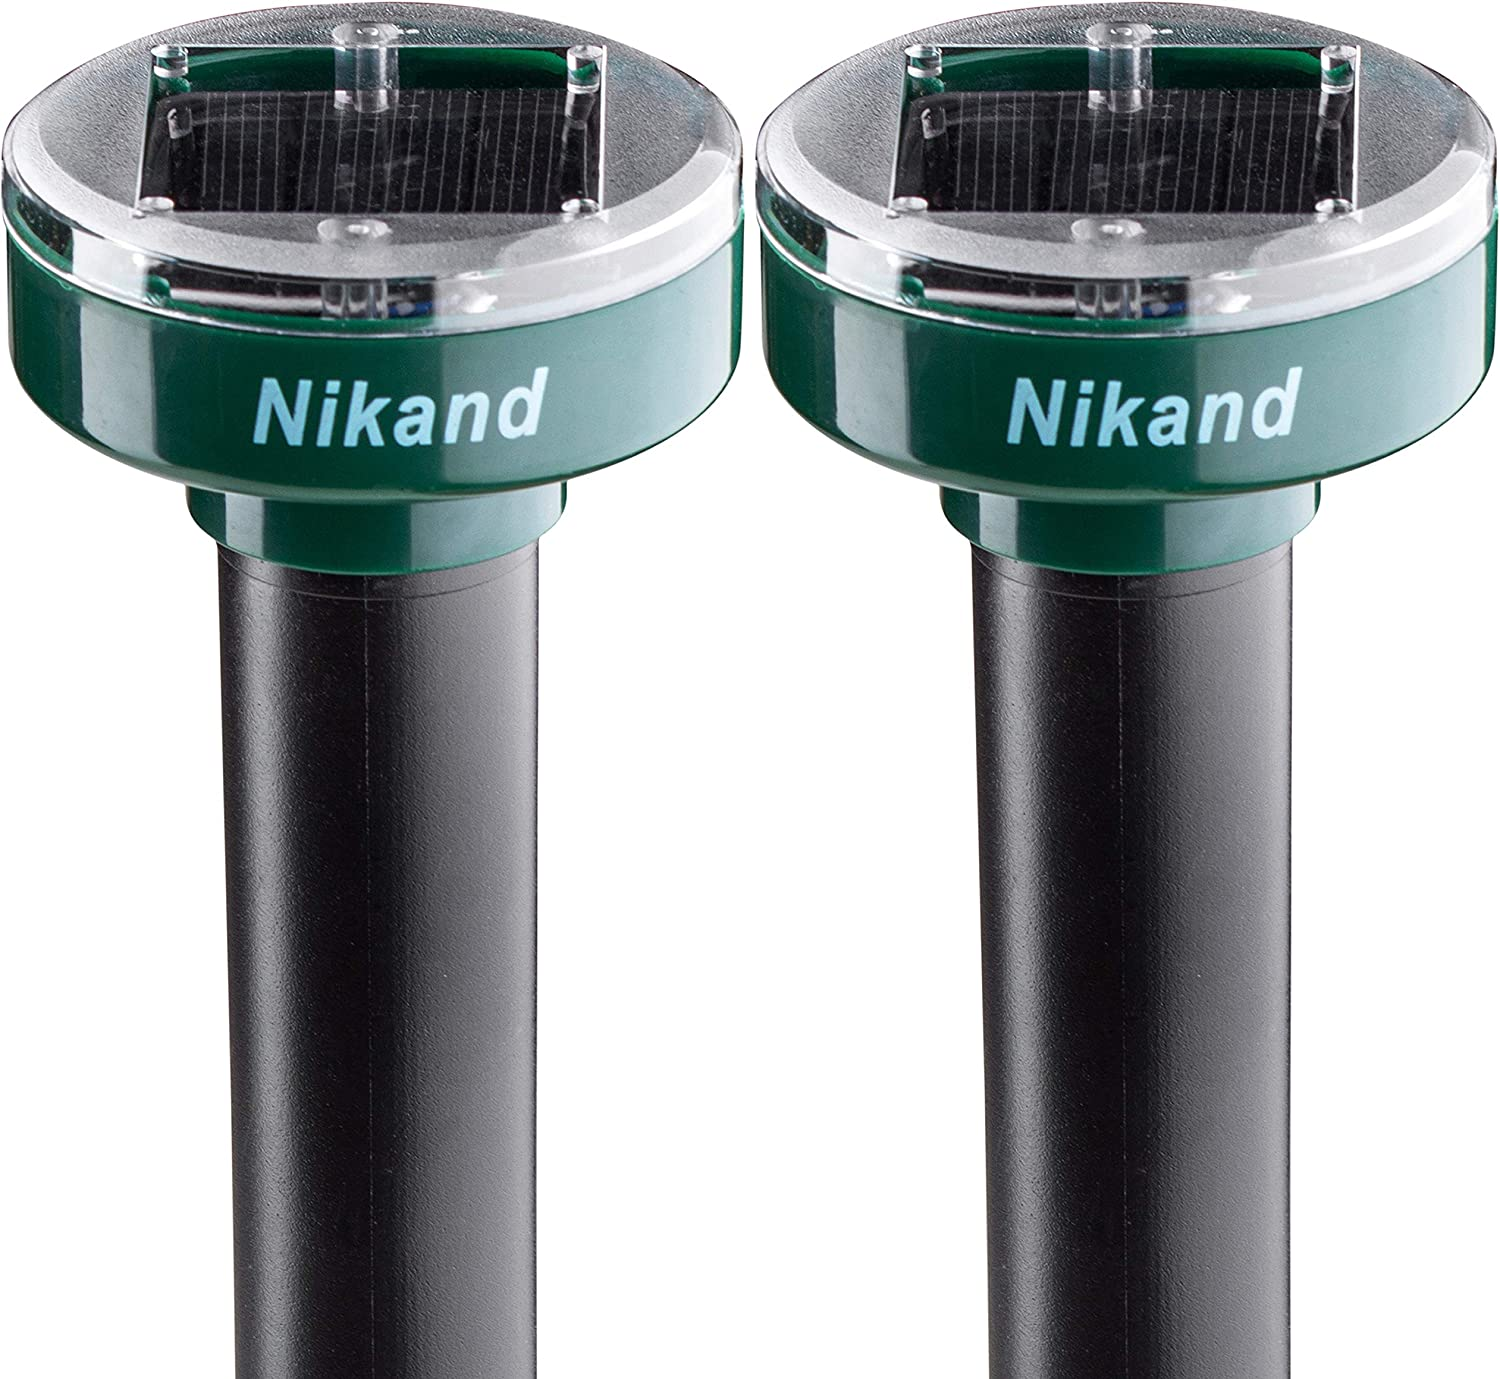 Gopher Repellent Ultrasonic Solar Powered 2 pcs - Mole Repellent Stakes Rodent Outdoor - Groundhog Repeller Snake Spike Chaser Pest Control - Sonic Mole Deterrent Pet Safe Devices